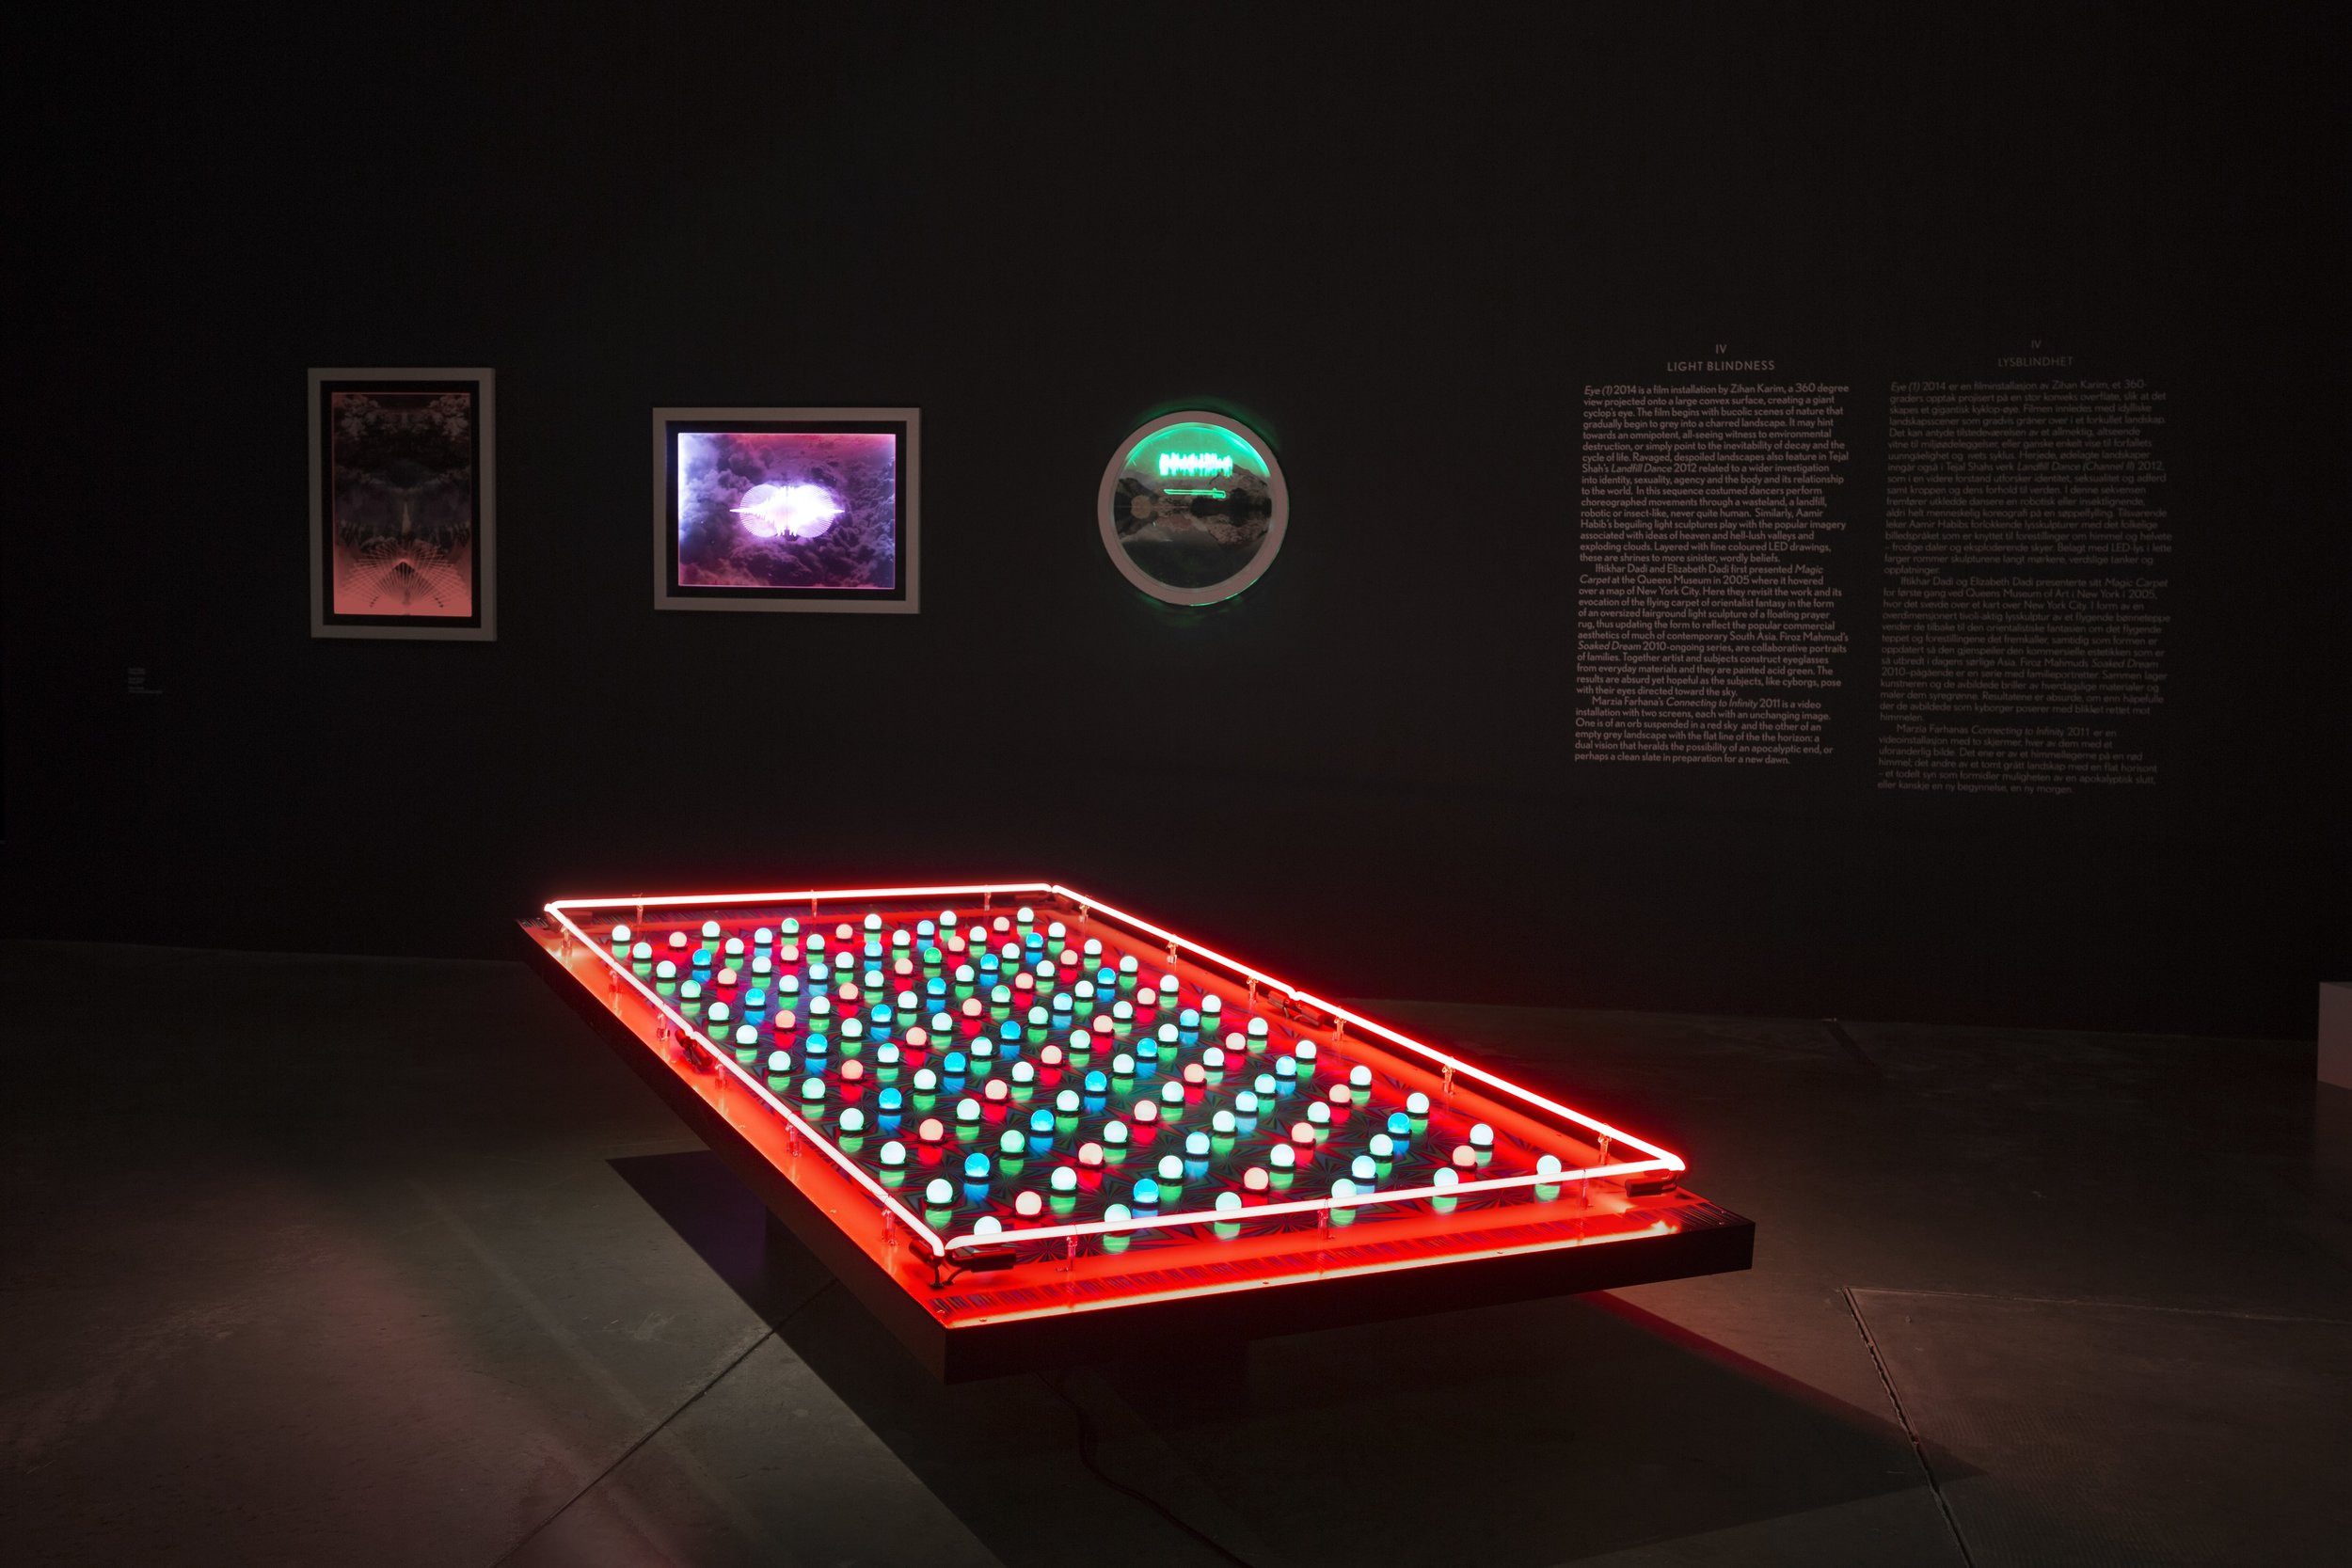 Iftikhar Dadi and Elizabeth Dadi's  Magical Carpet II , 2005-2016, created through the use of laser print and coloured light bulbs gives the impression of levitation in the becoming of a digital age.